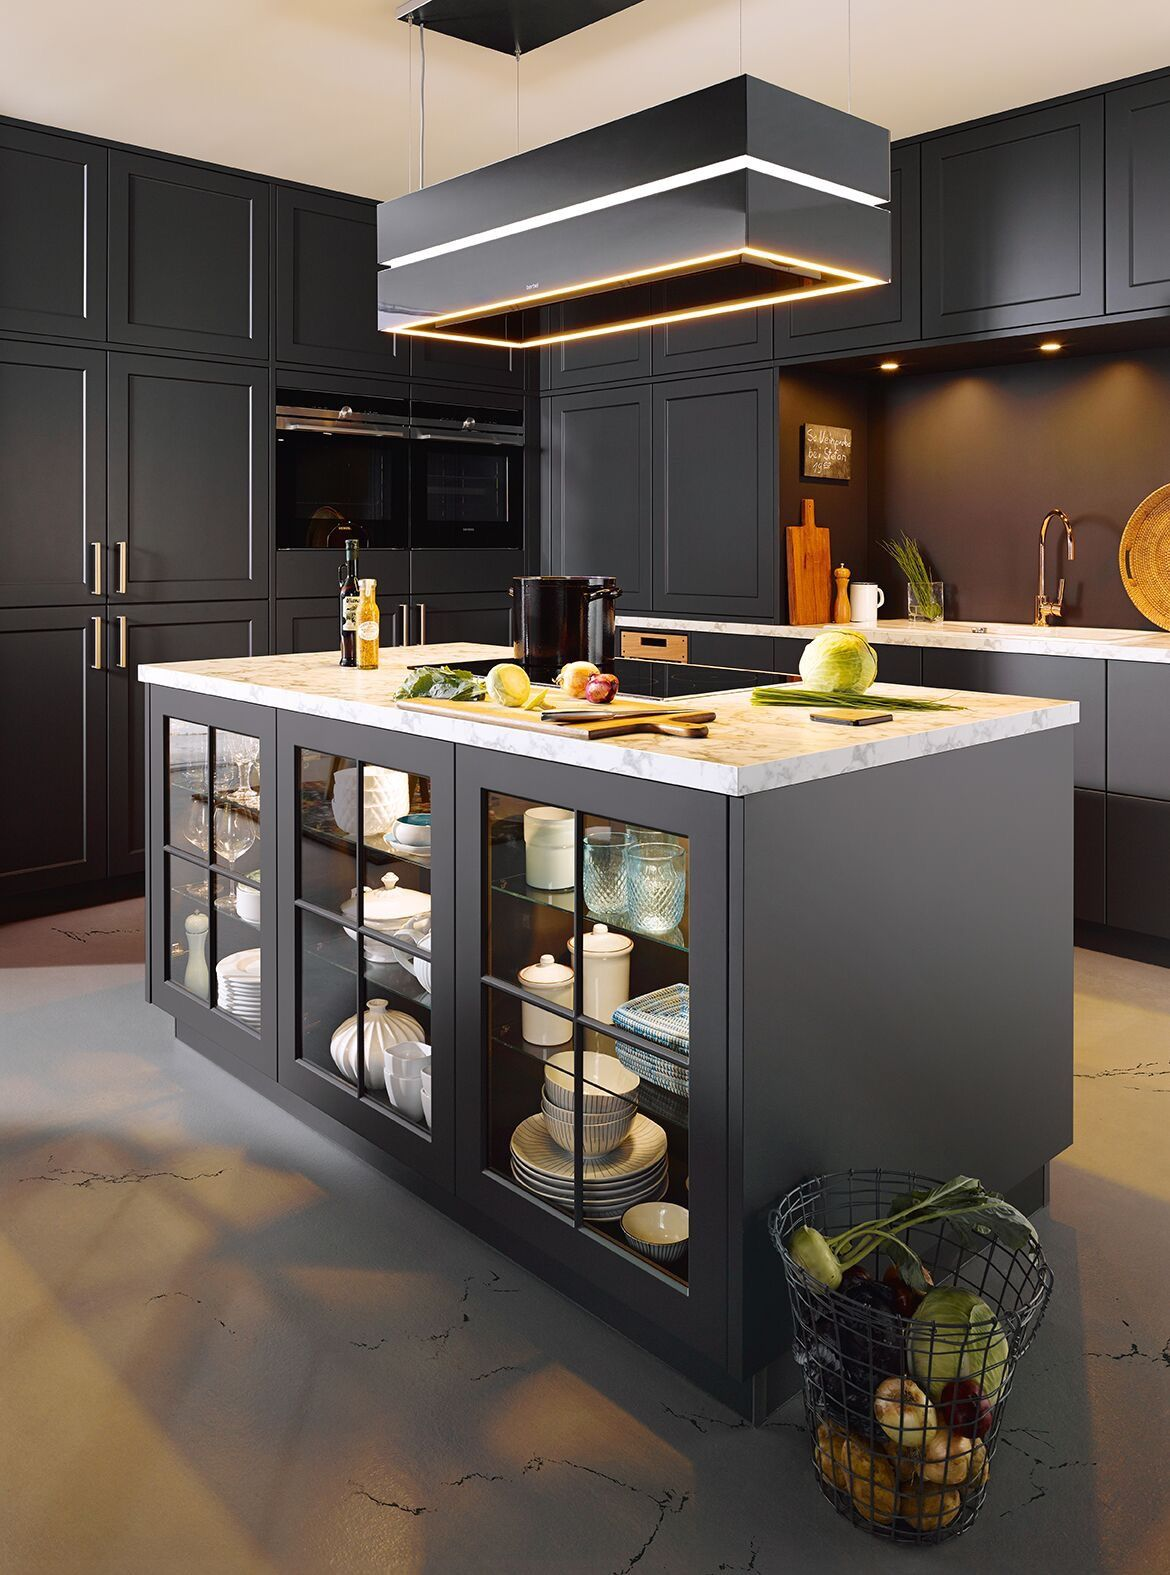 Amazing kitchen from Kitchens by Mode... Want one for my flat ...